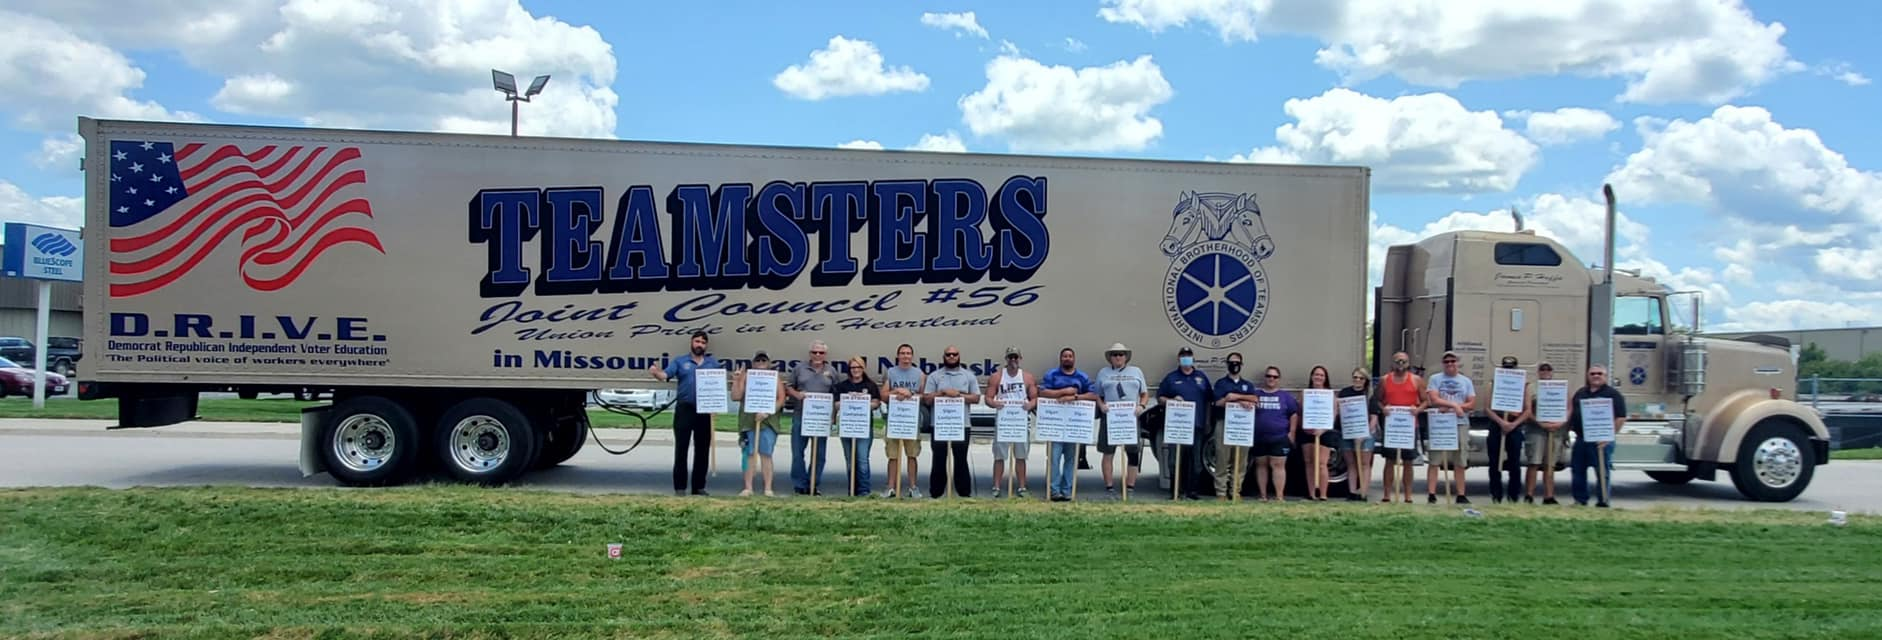 Union Members Support Striking Workers